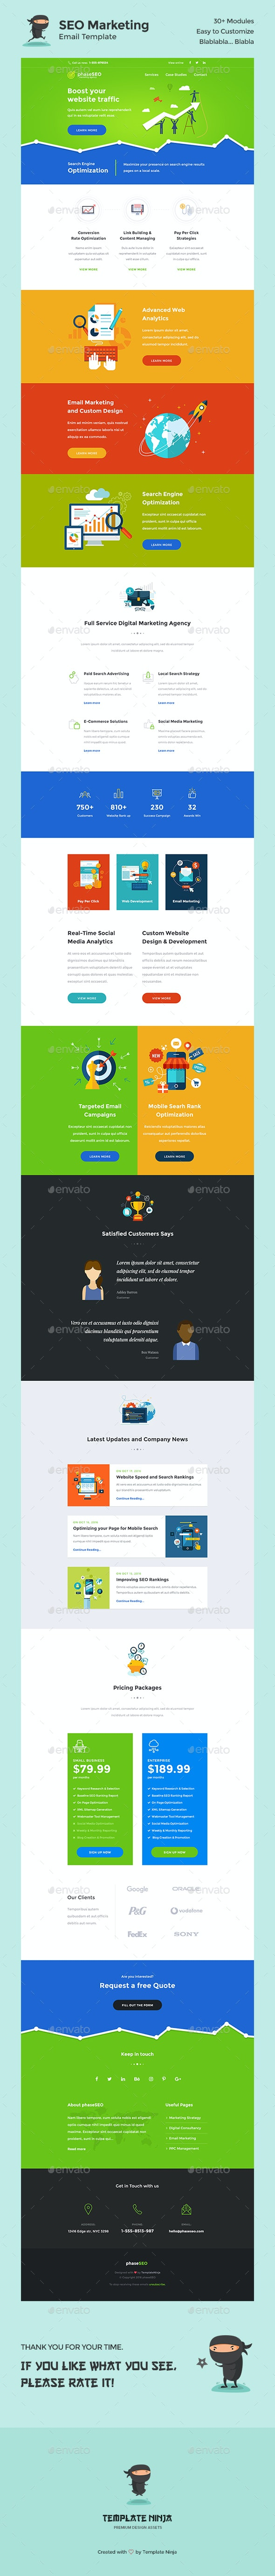 PhaseSEO - SEO Marketing E-Newsletter PSD Template - E-newsletters Web Elements